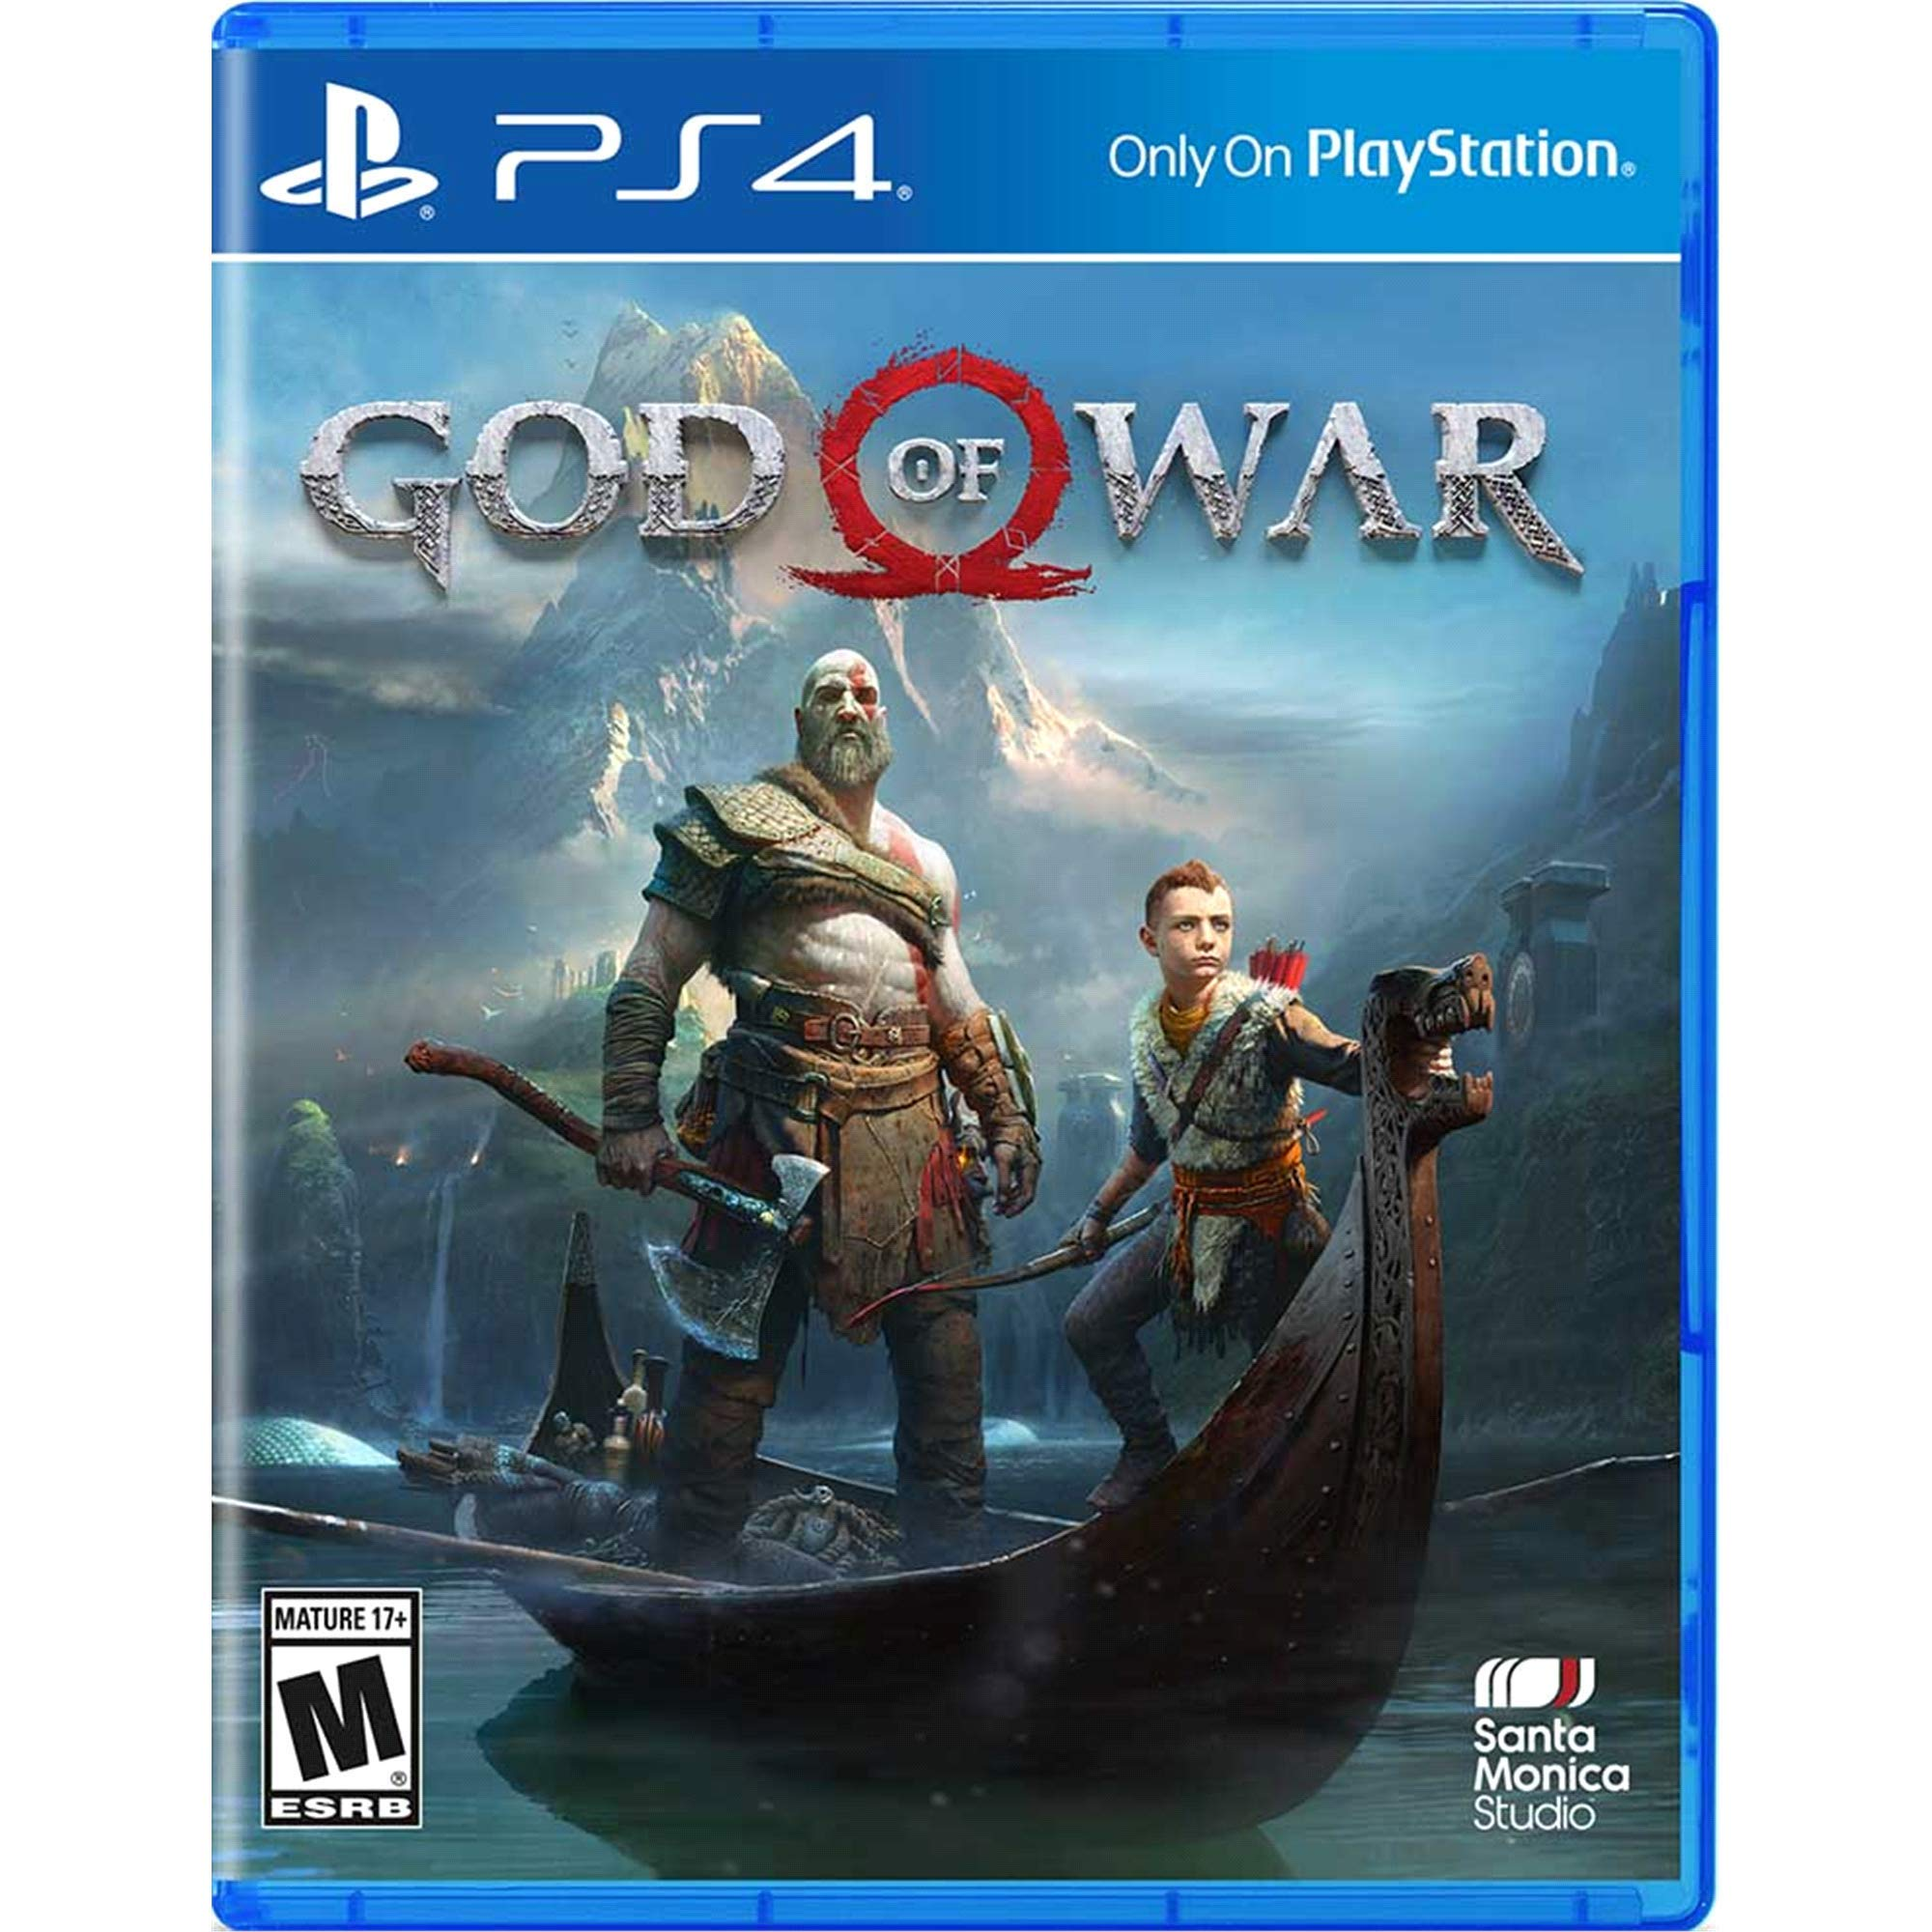 God of War – Playstation 4